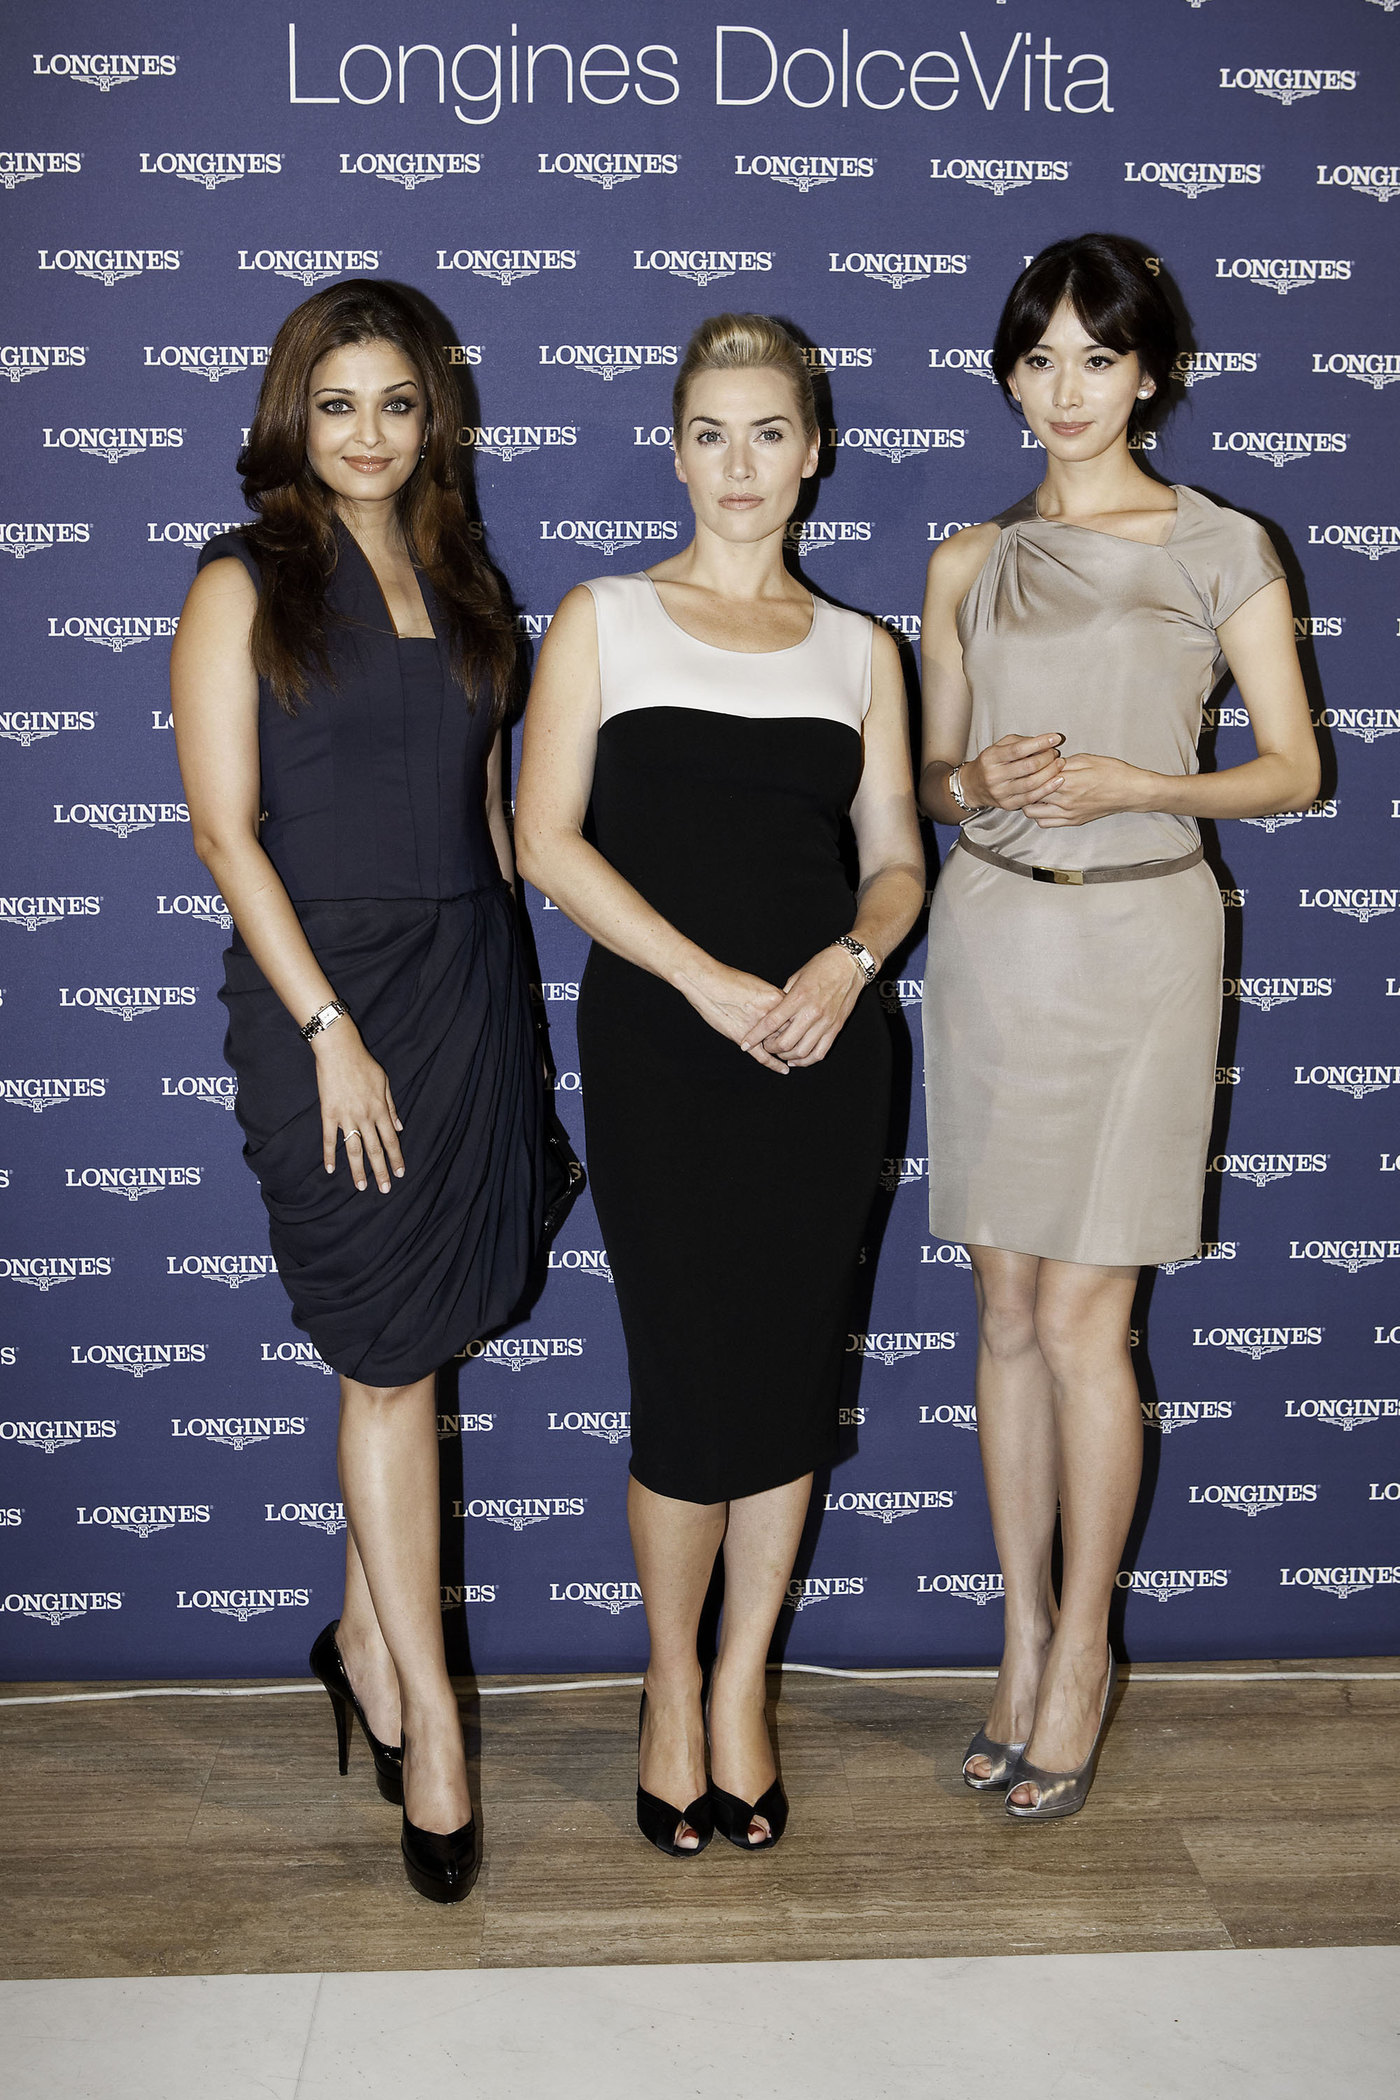 Longines Corporate Event: Kate Winslet, Aishwarya Rai Bachchan and Chi Ling Lin reveal the new additions to the Longines DolceVita collection 9